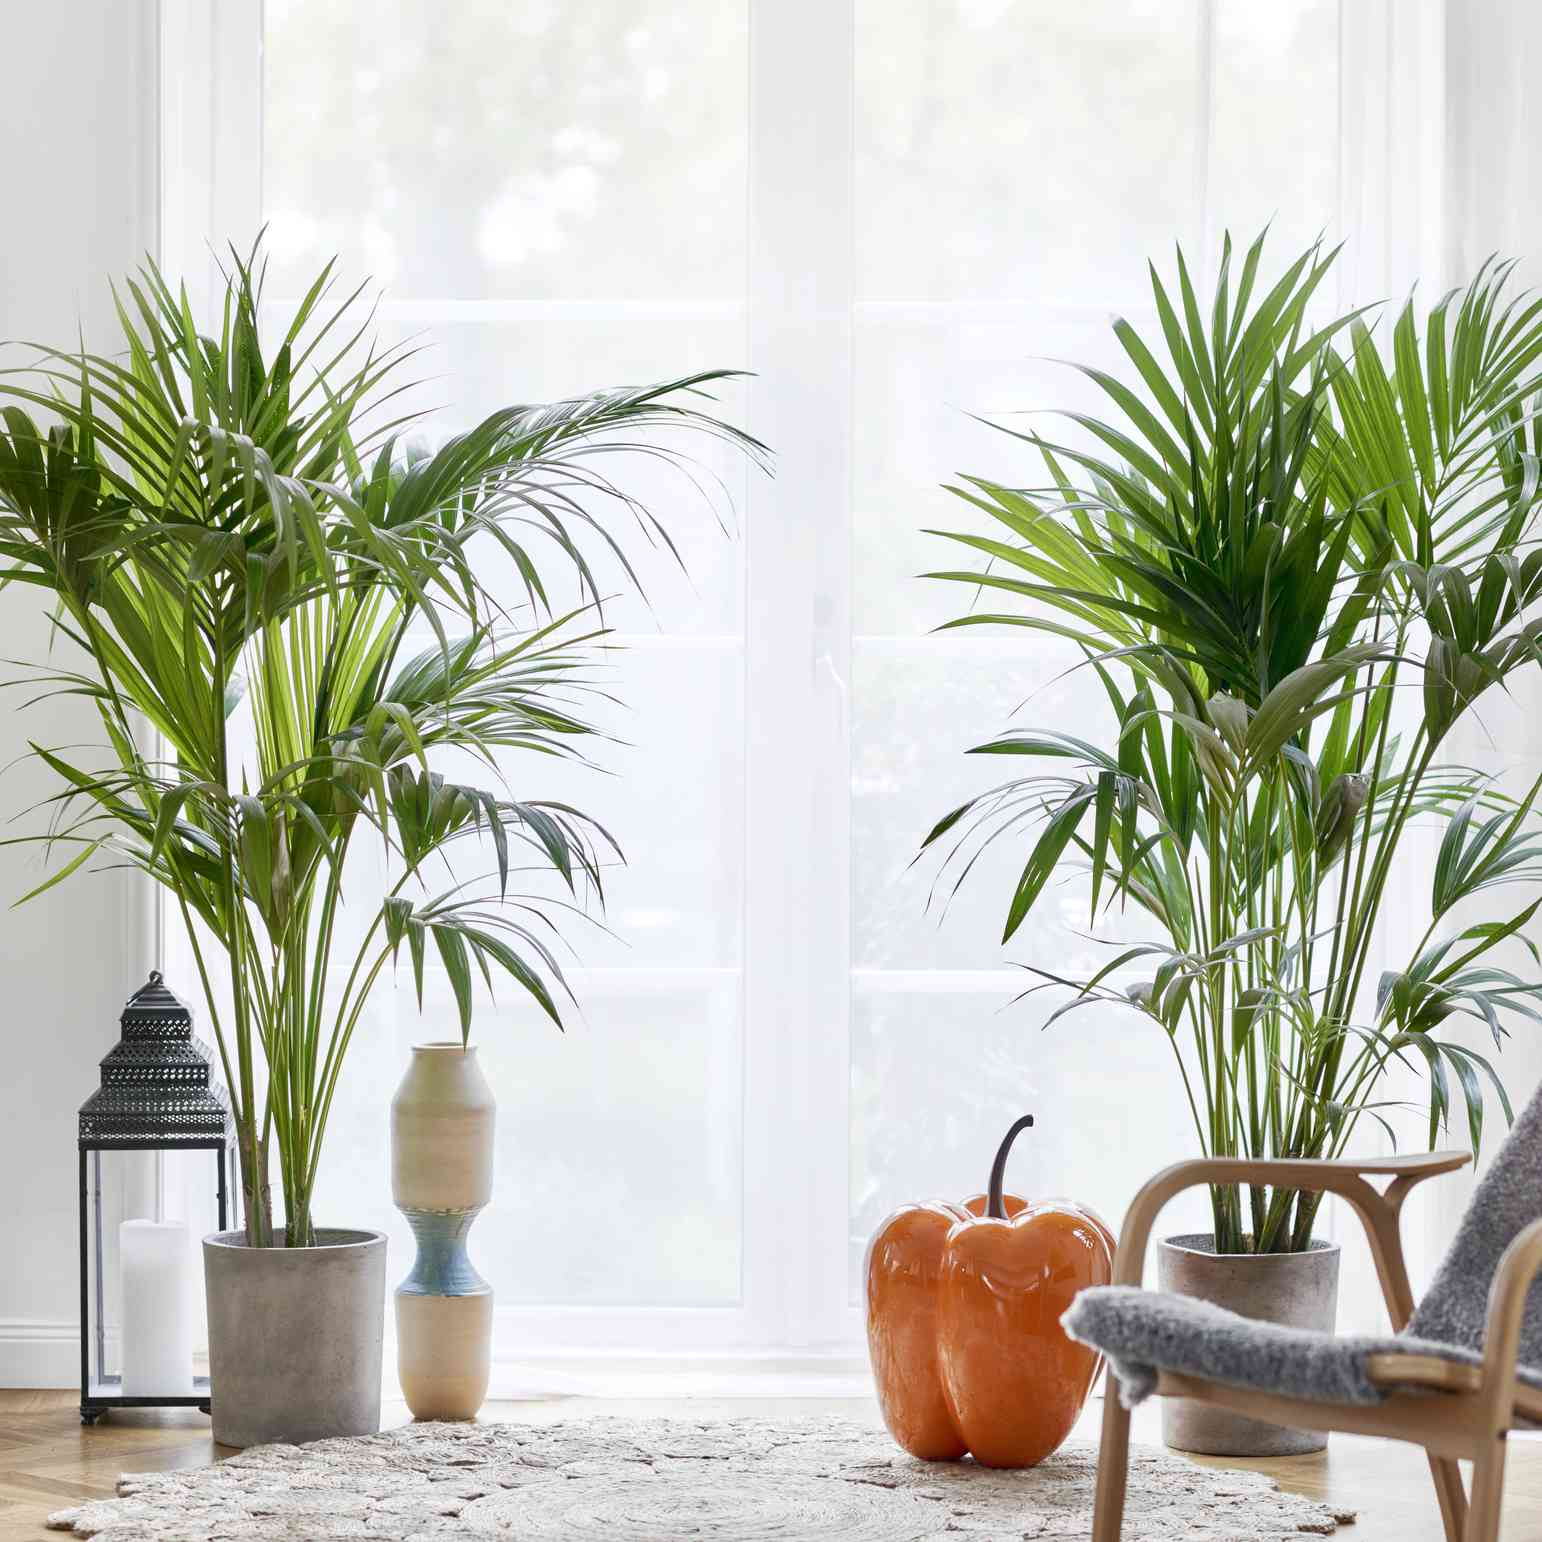 two potted parlor palms in front of a window